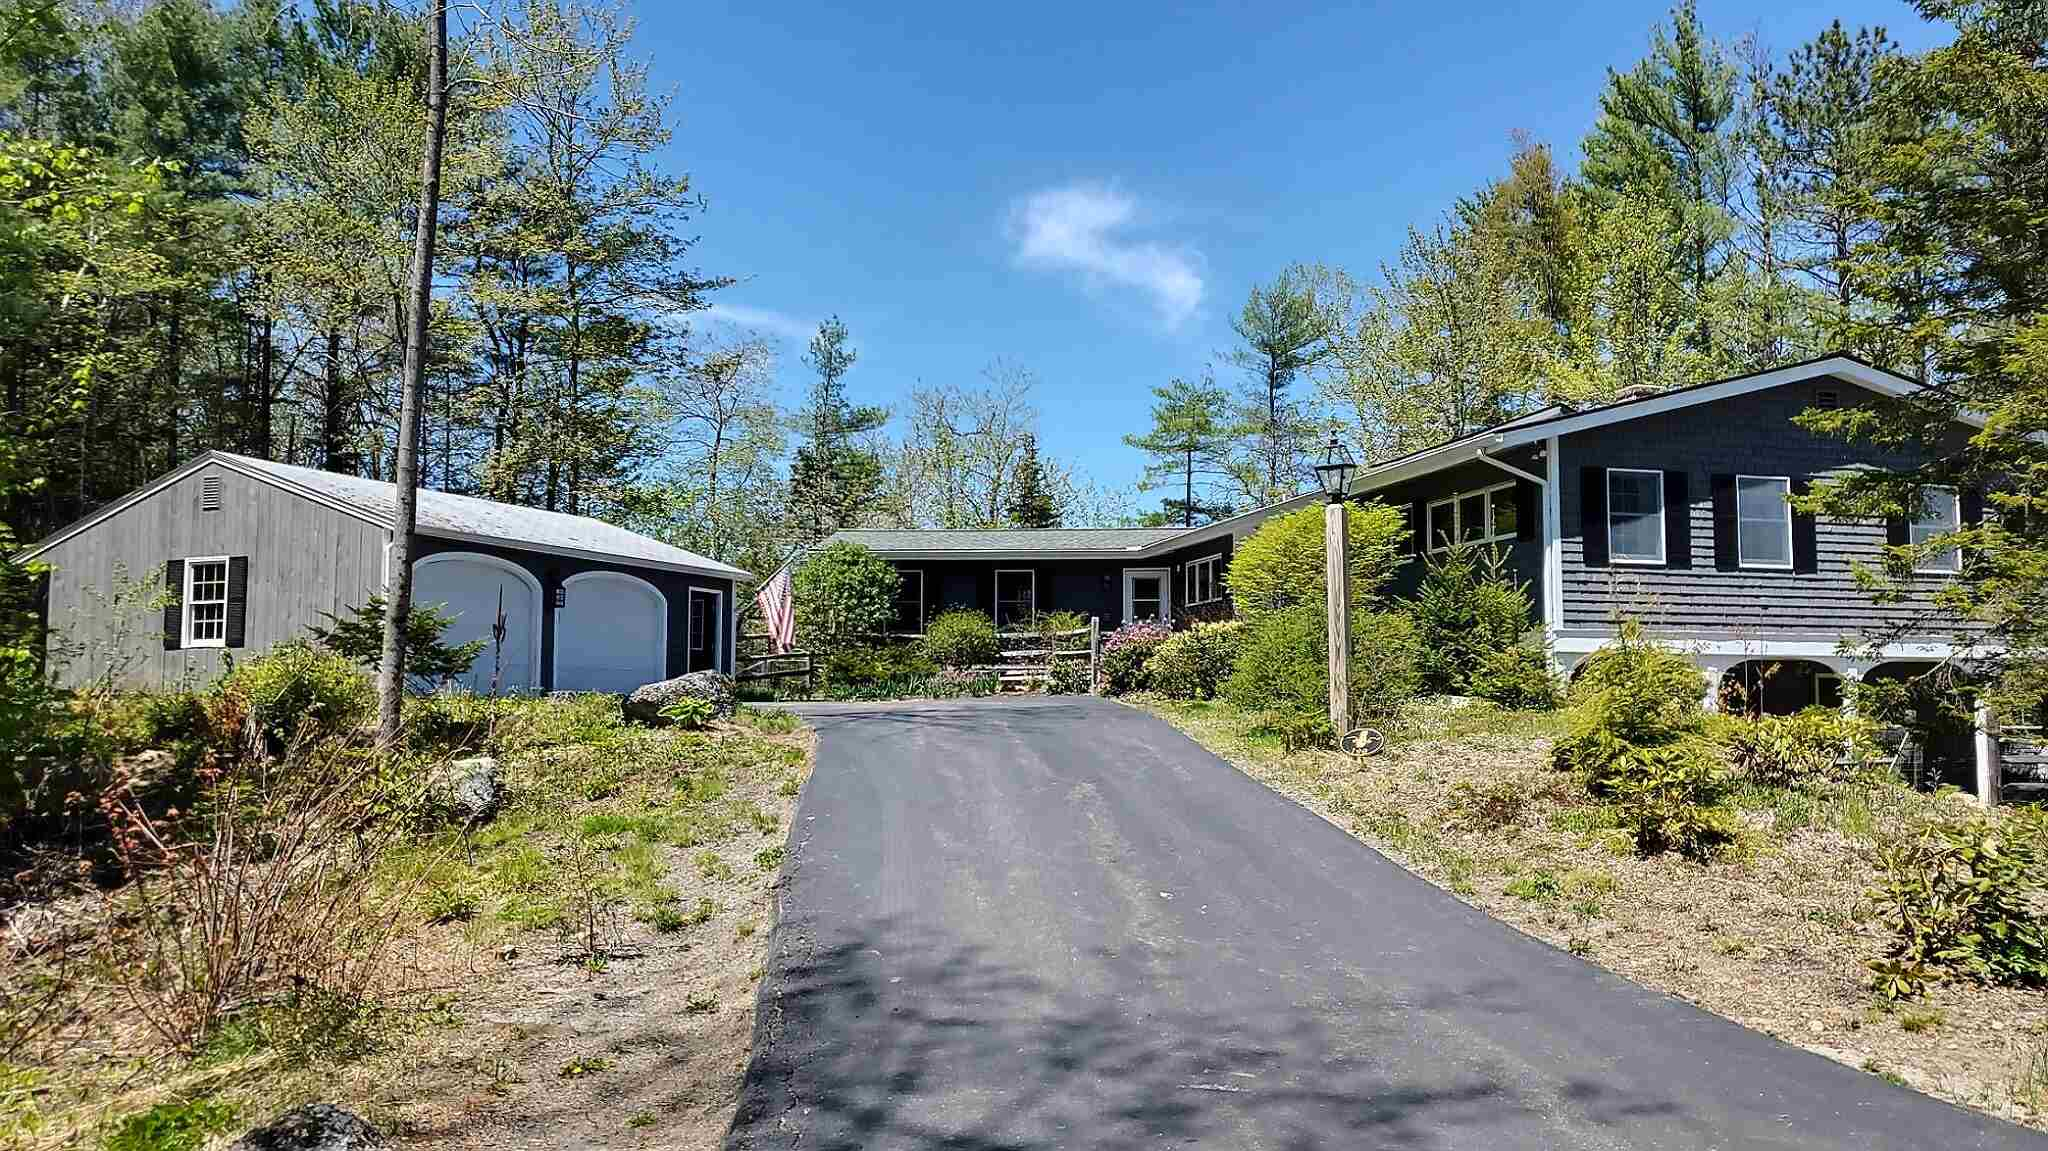 MLS 4807300: 190 Fairway Lane, New London NH